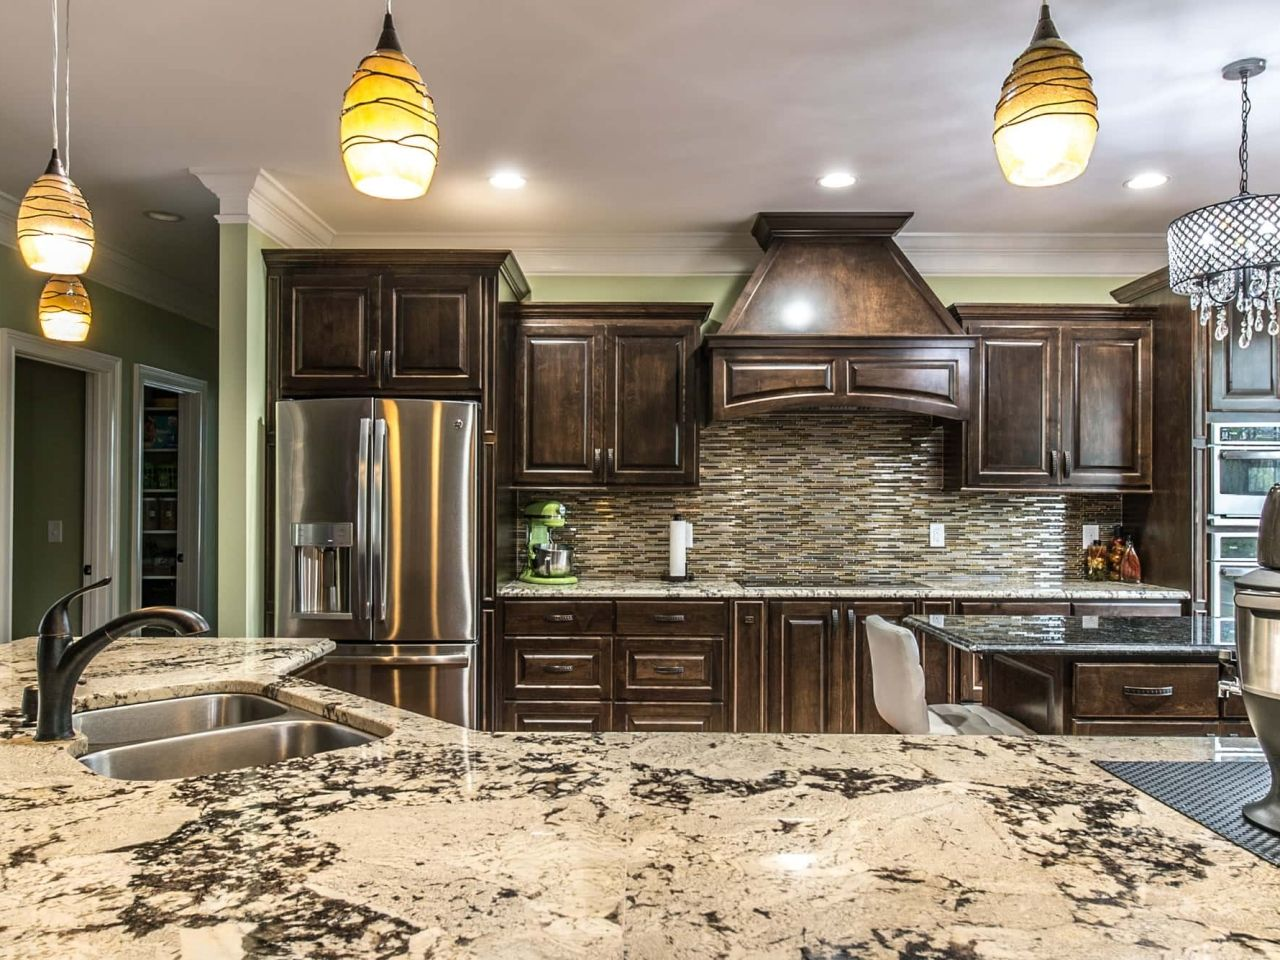 Granite Kitchen Countertops Delicatus White Charleston Sc East Coast Granite And Design  (12)